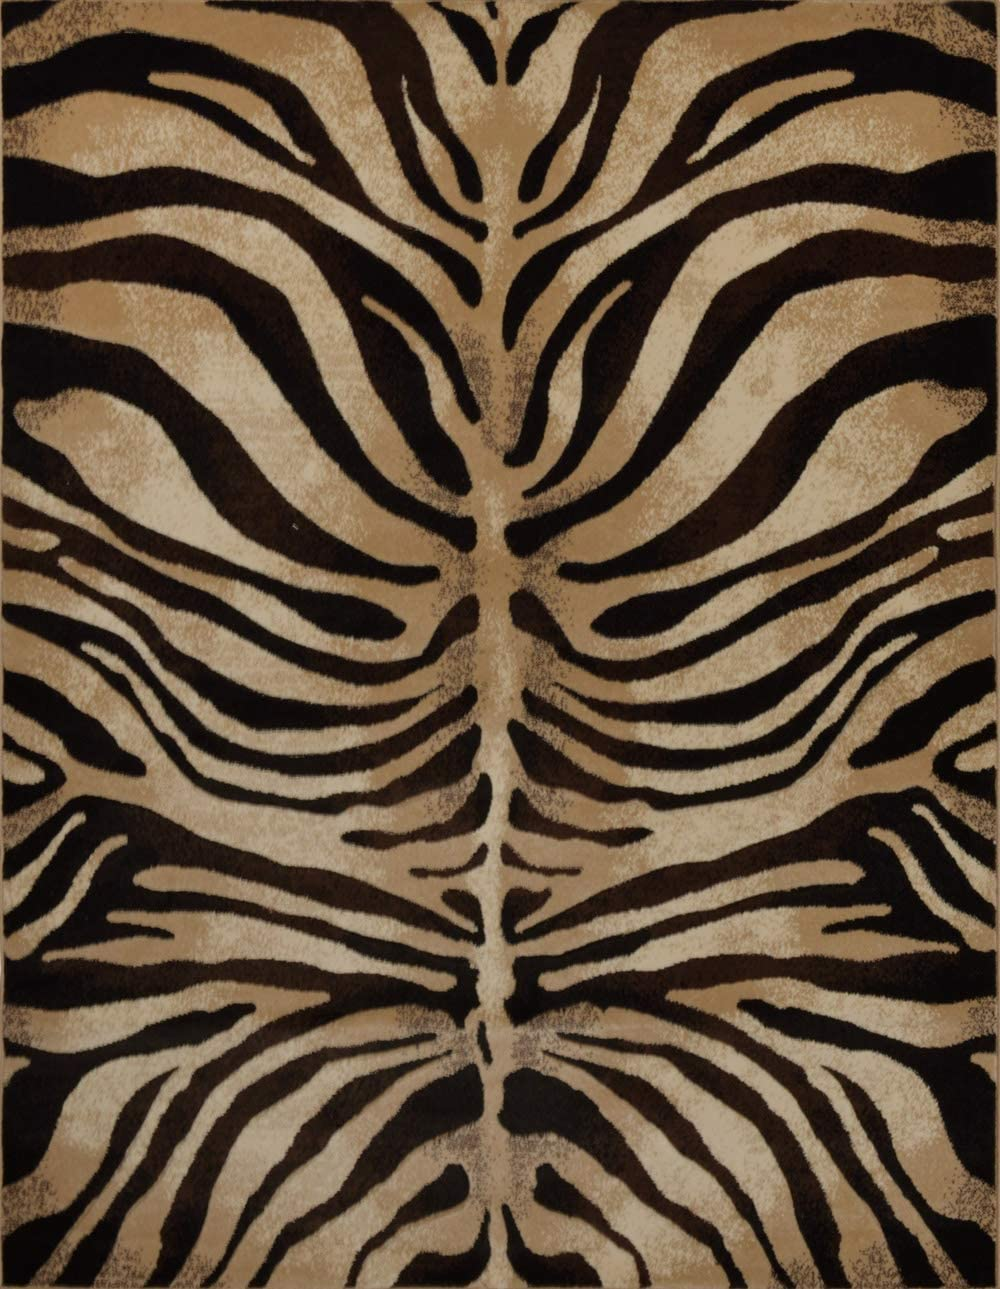 Home Dynamix Stylish Comfortable Area Rugs, Tribeca Elegant Design with Lasting Durability for Affordable Price.